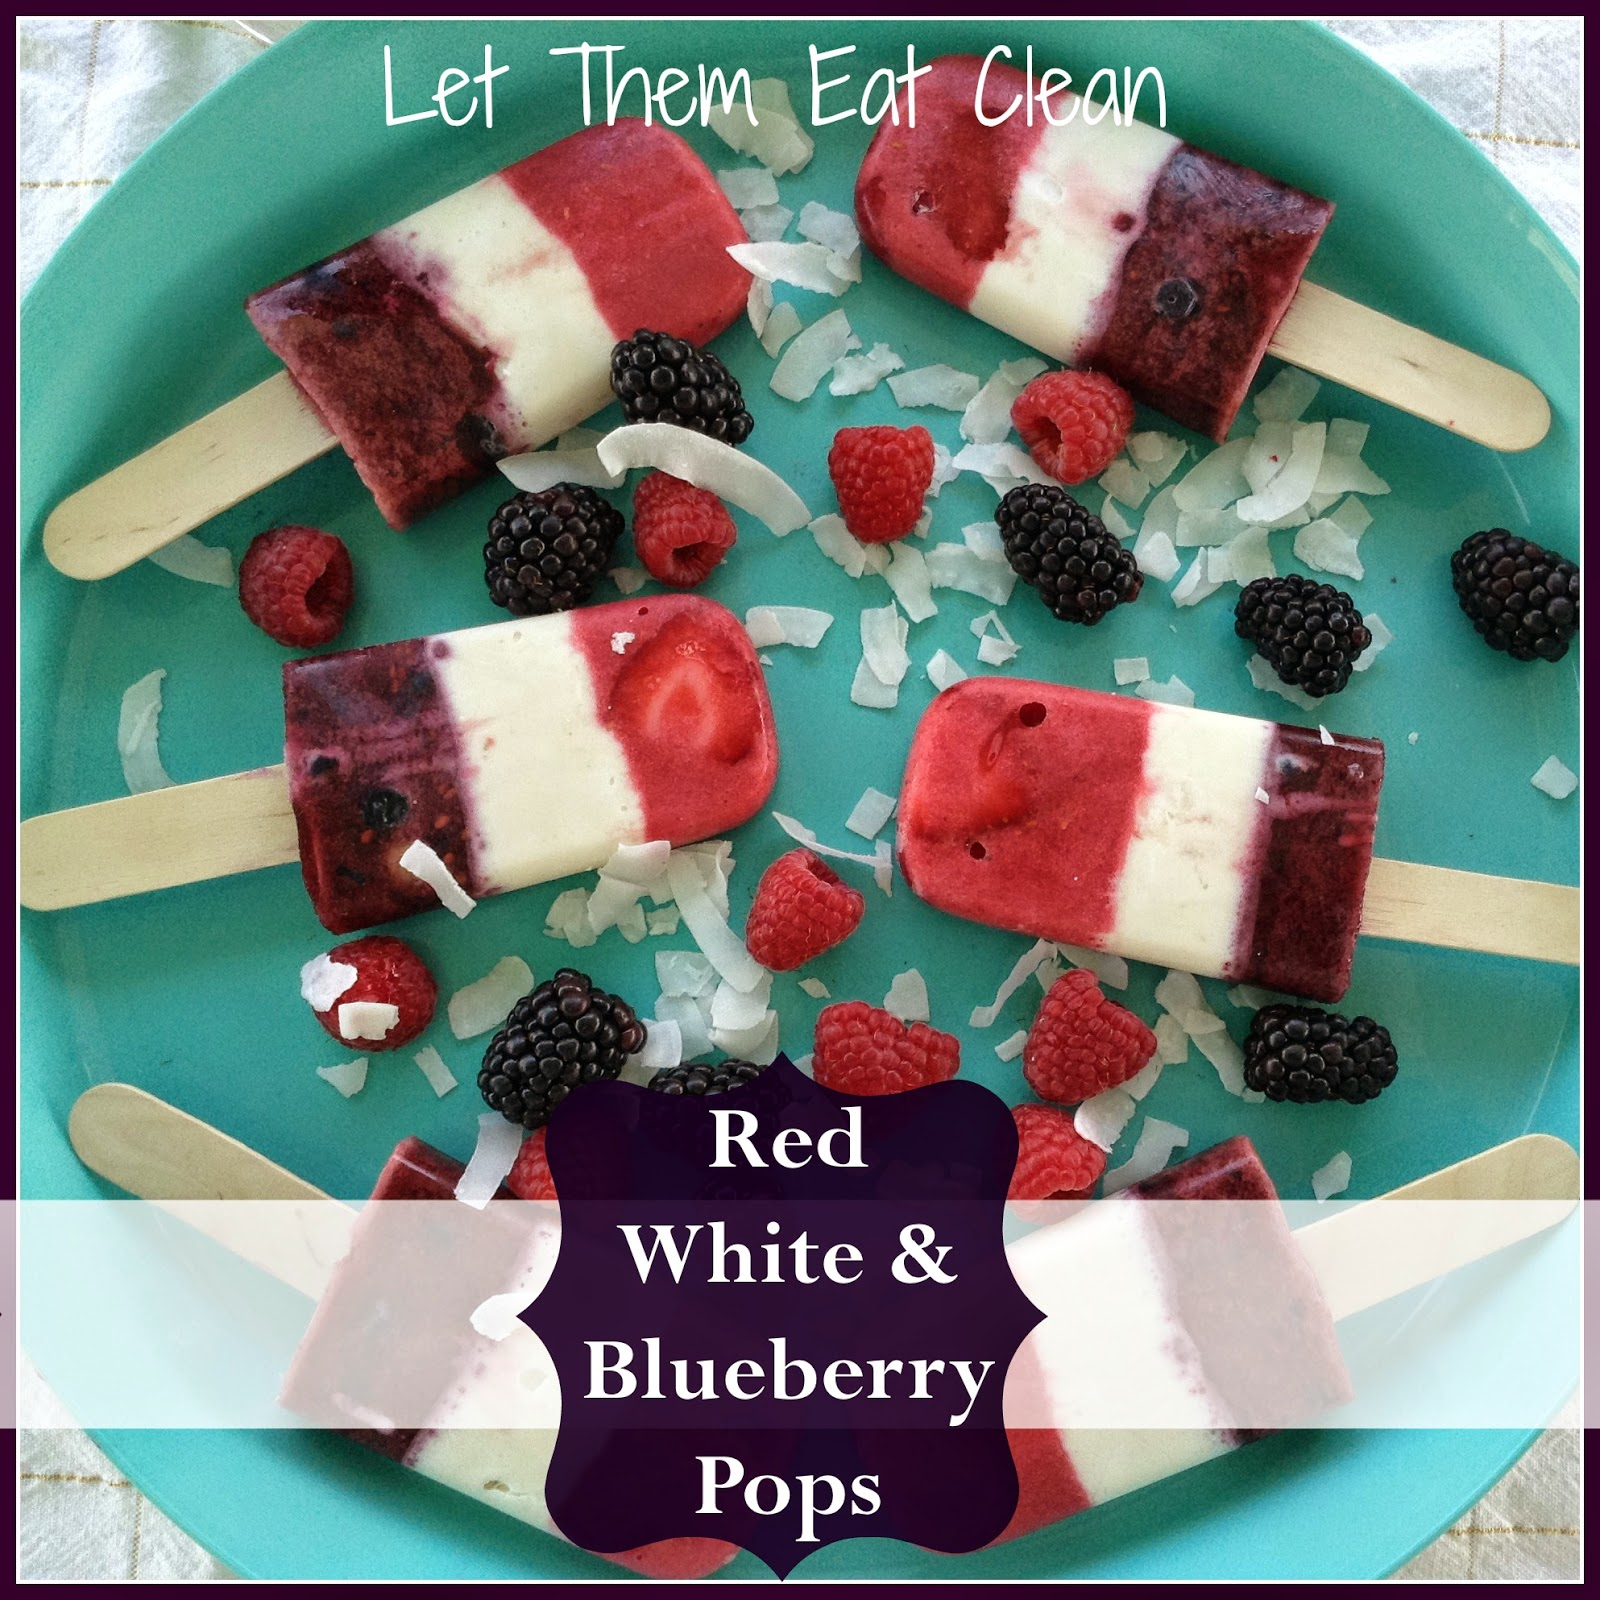 Let Them Eat Clean: Red White & Blueberry Pops